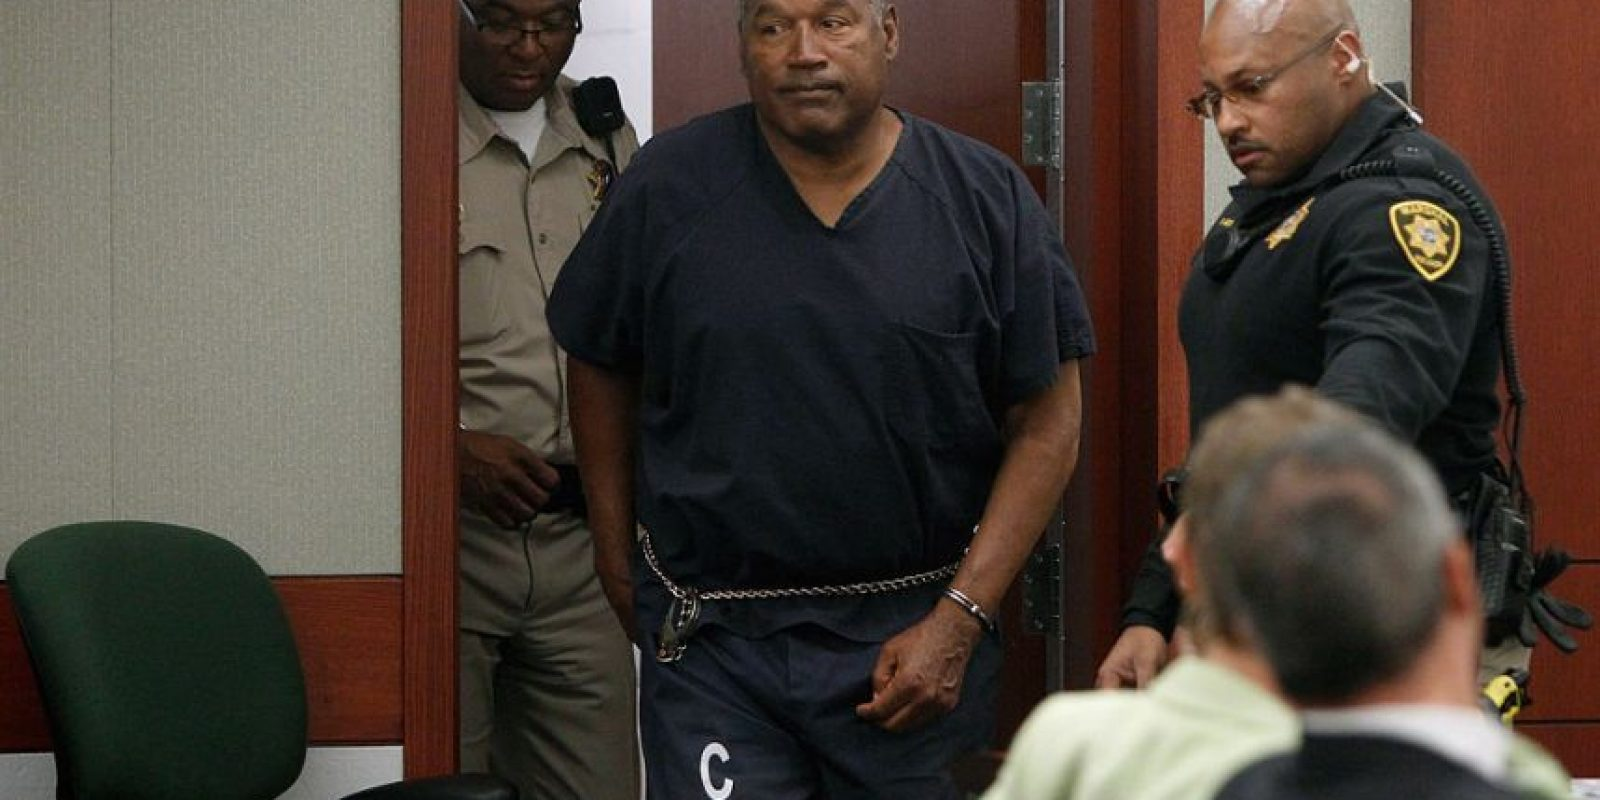 O.J. Simpson Foto: Getty Images